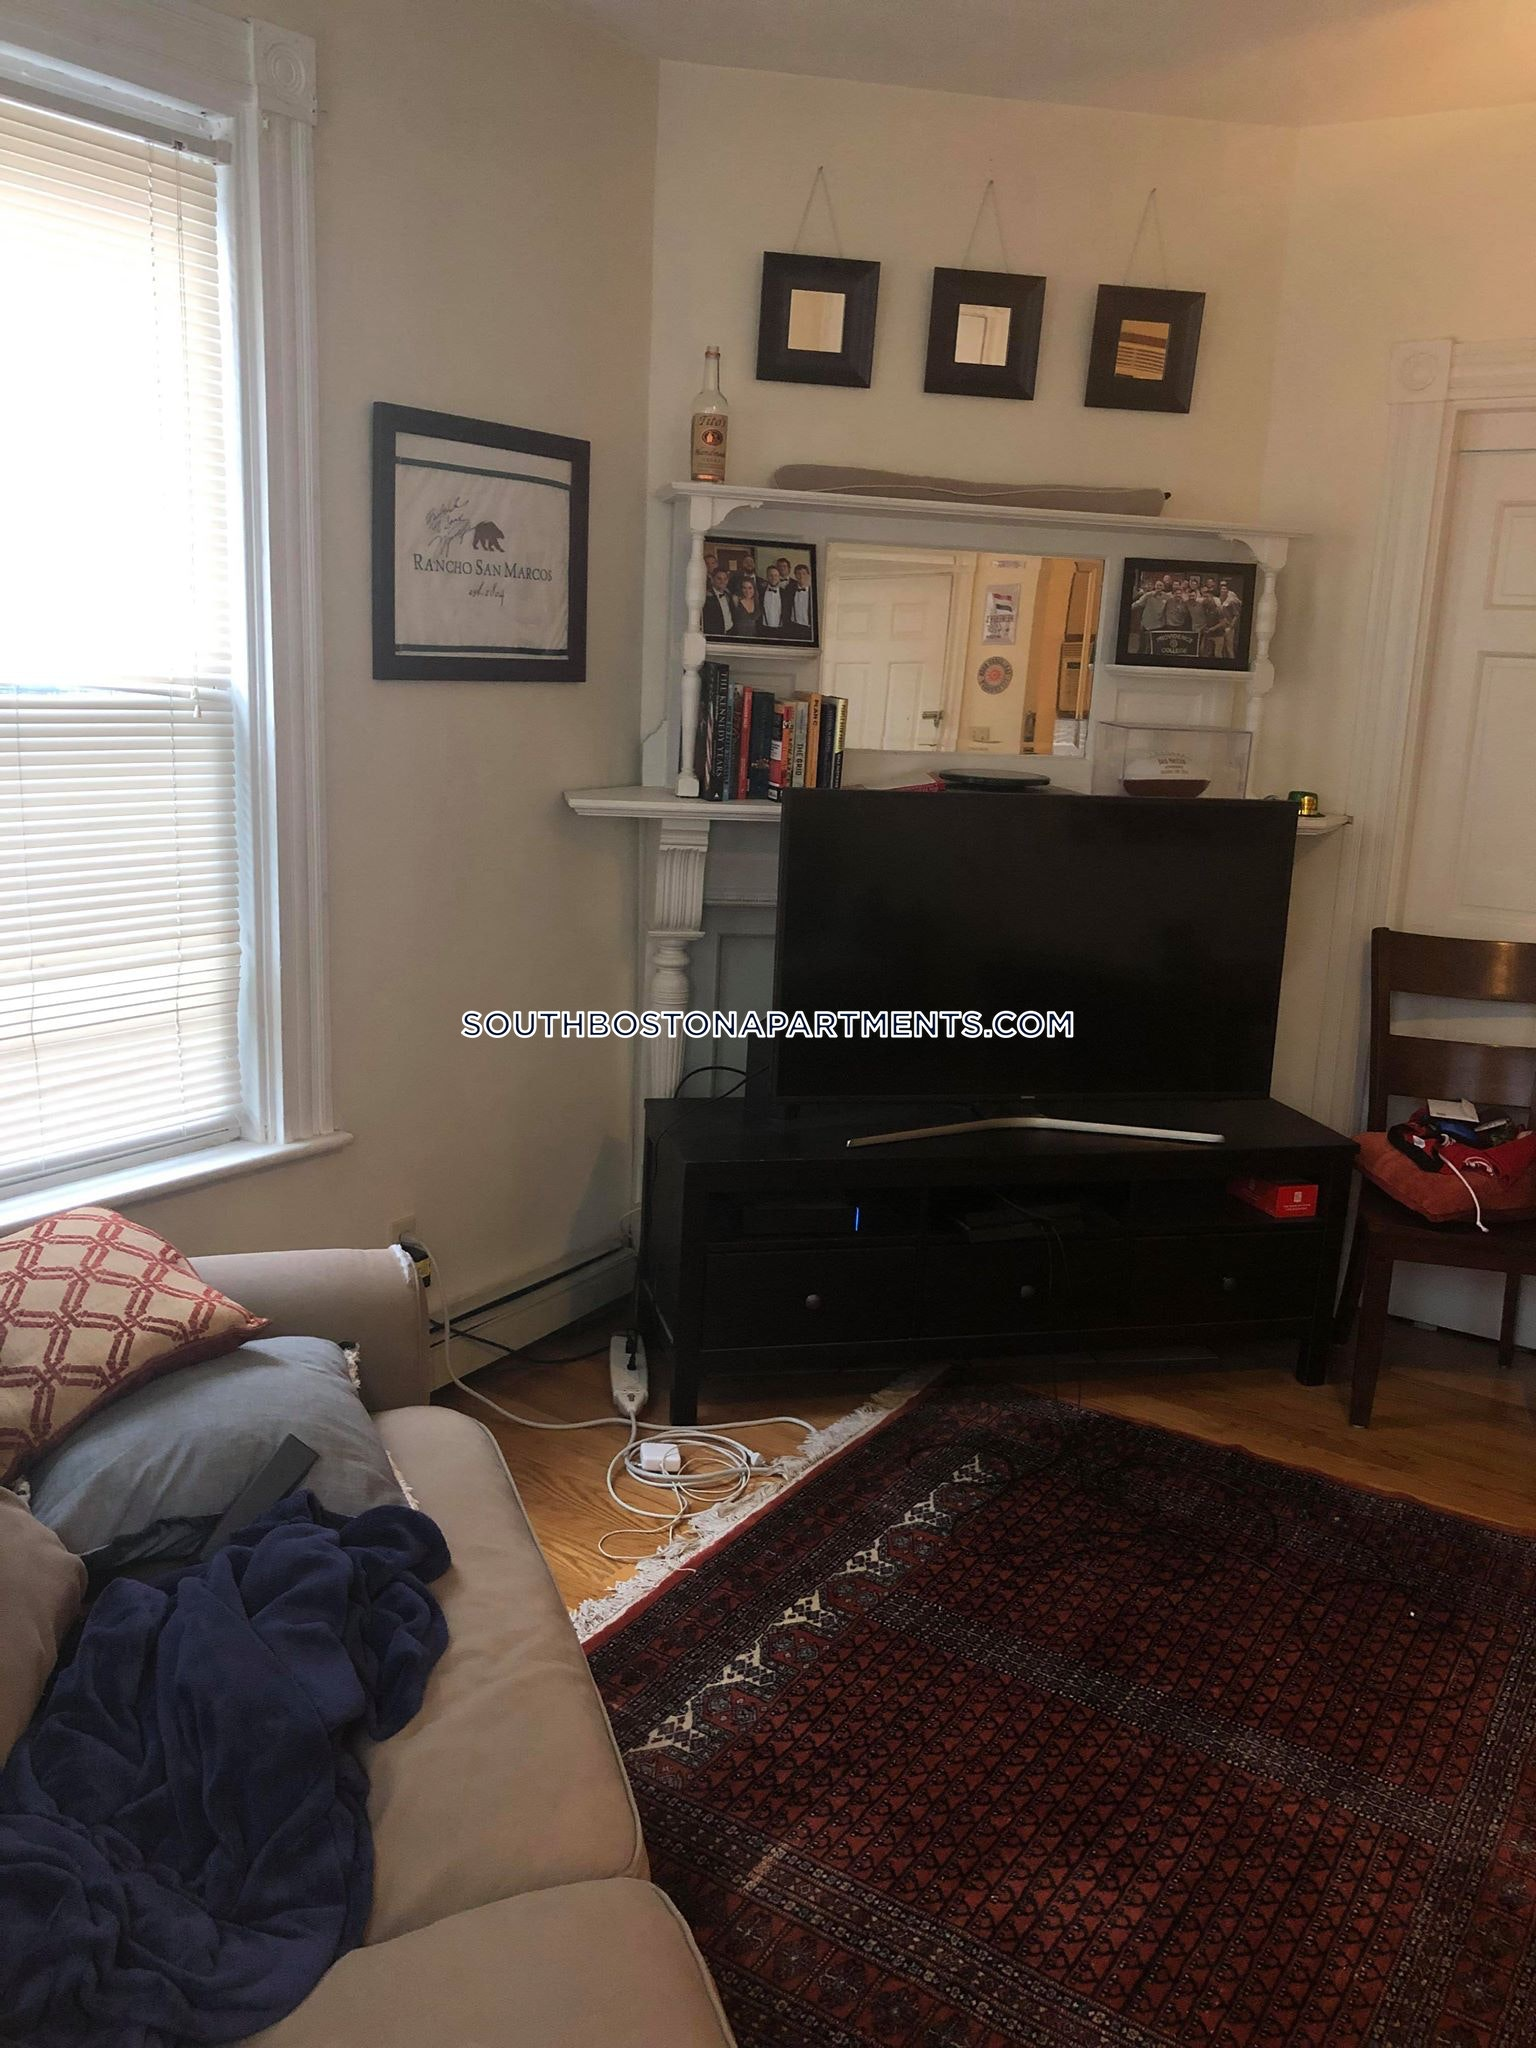 Boston luxury apartments south boston apartment for rent - Boston 1 bedroom apartments for sale ...